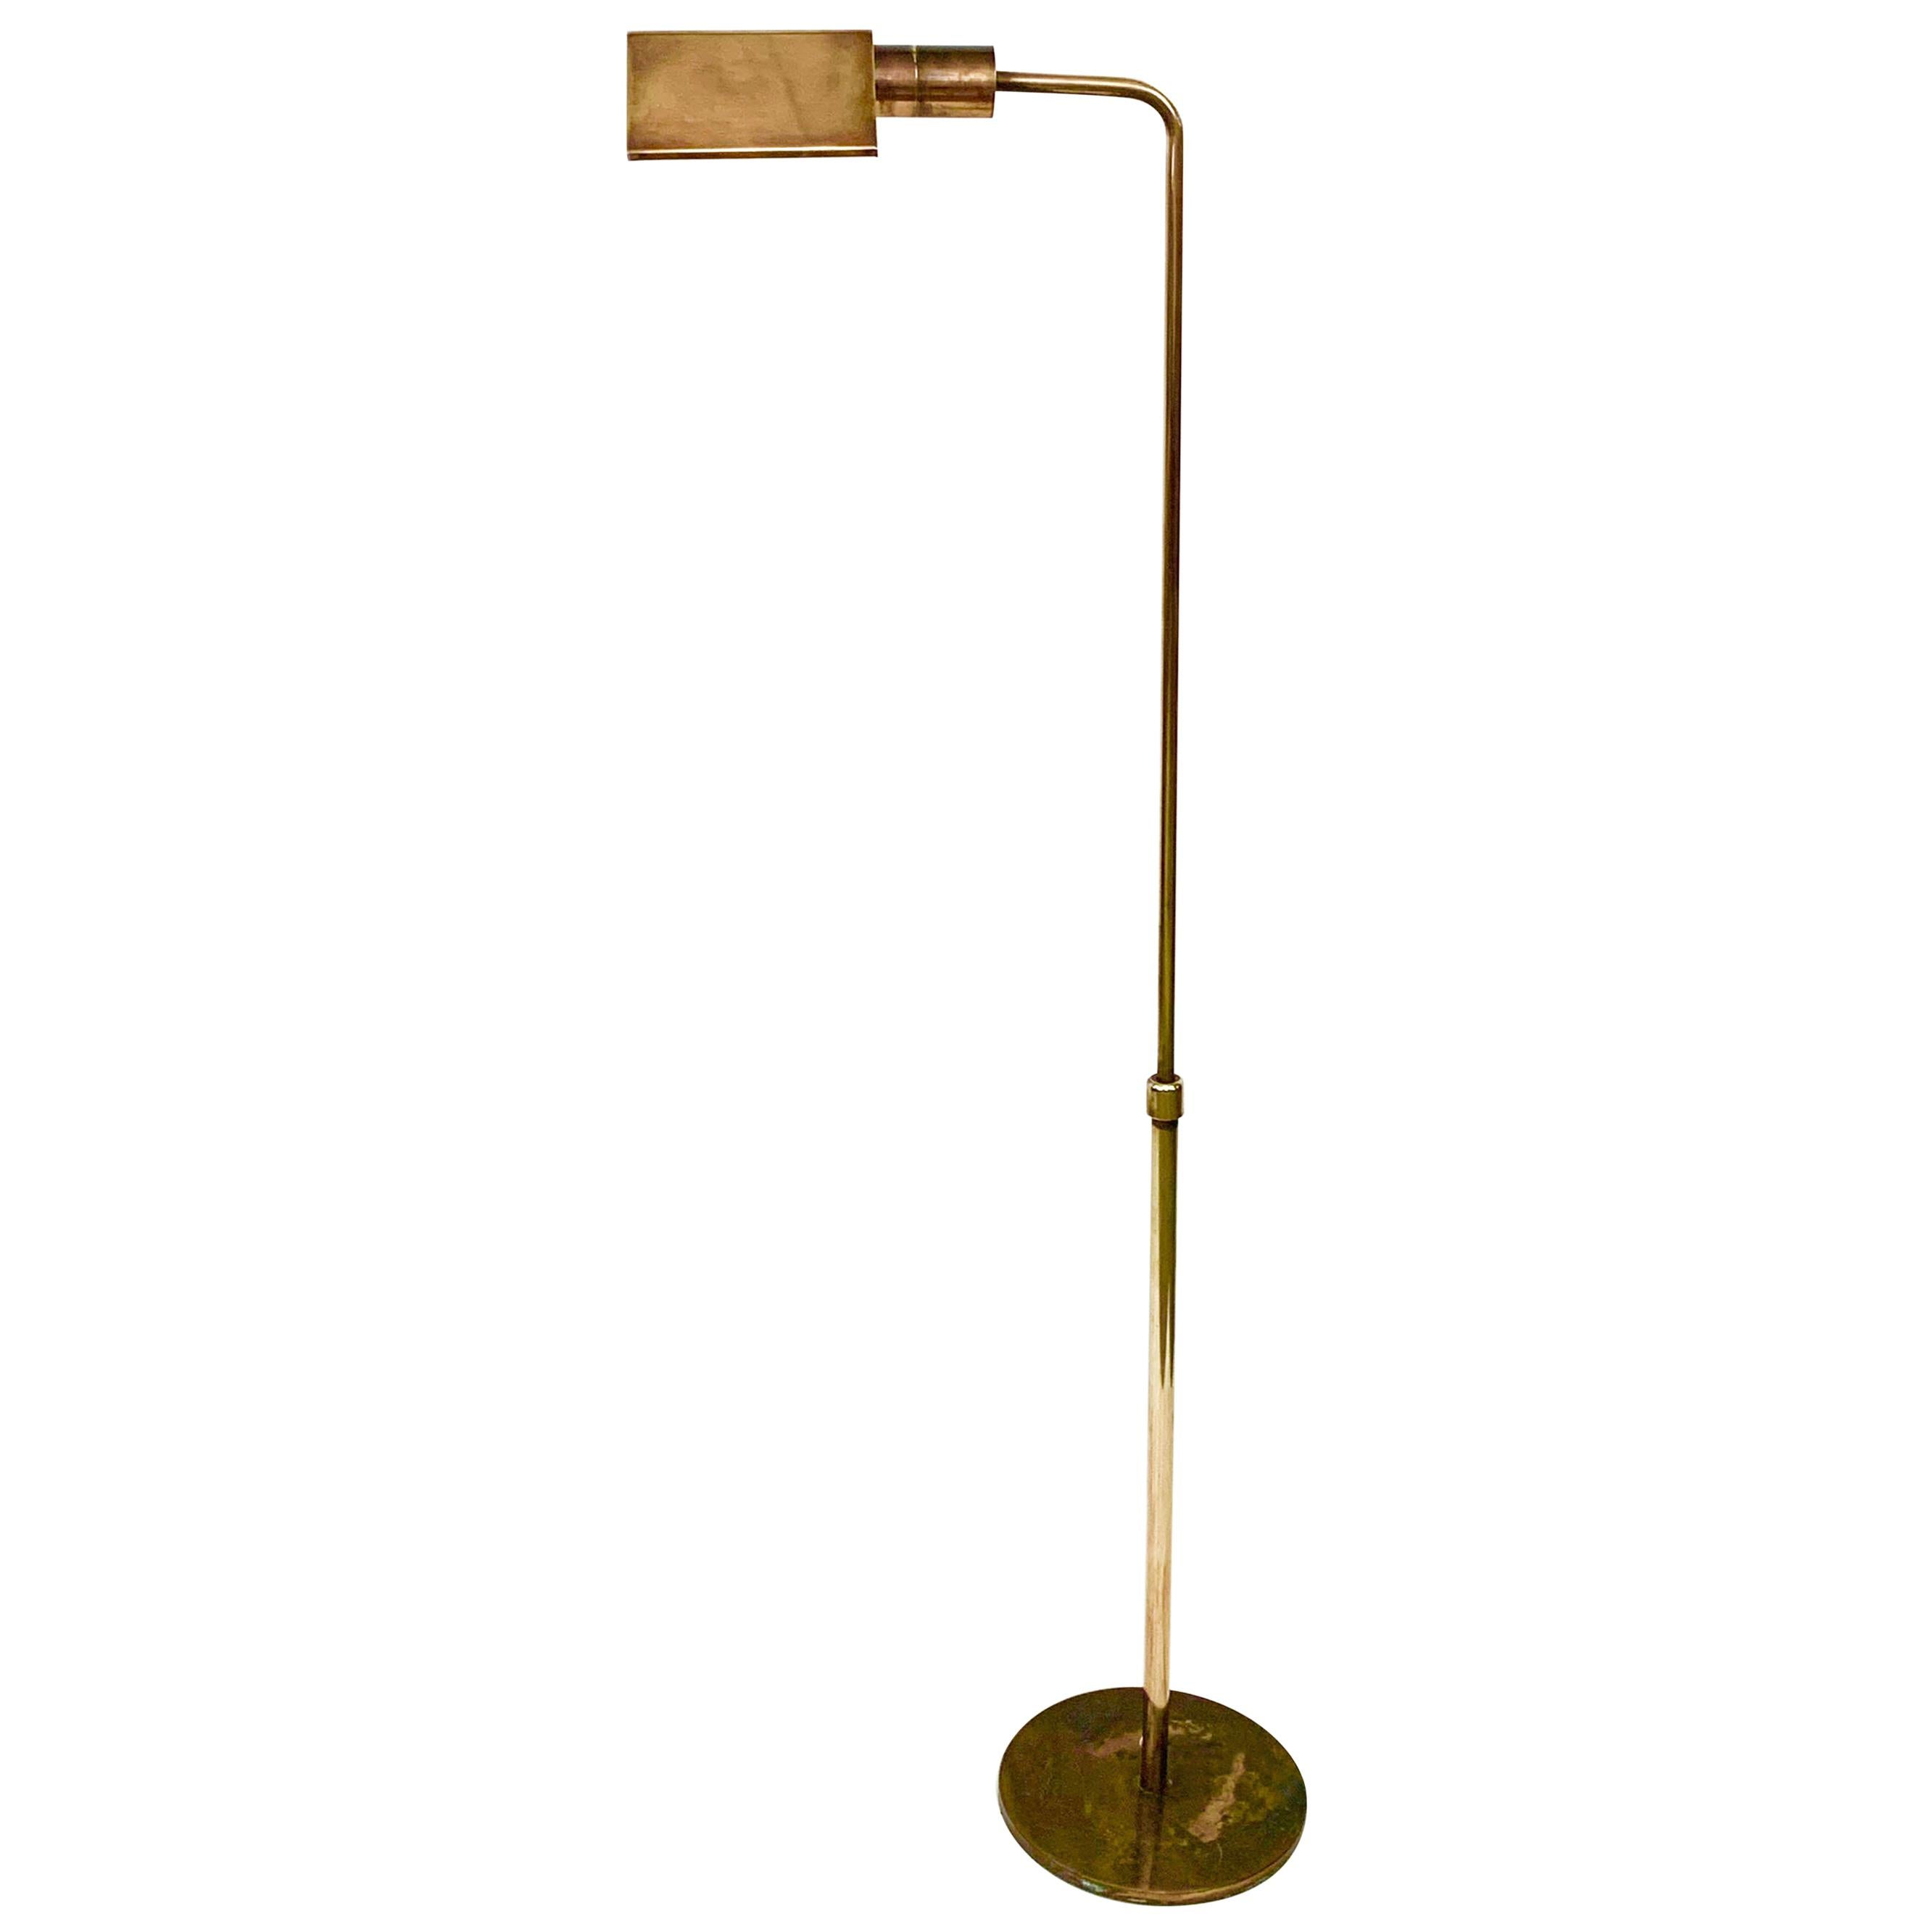 Midcentury Polished Brass Adjustable Italian Reading Floor Lamp, 1960s